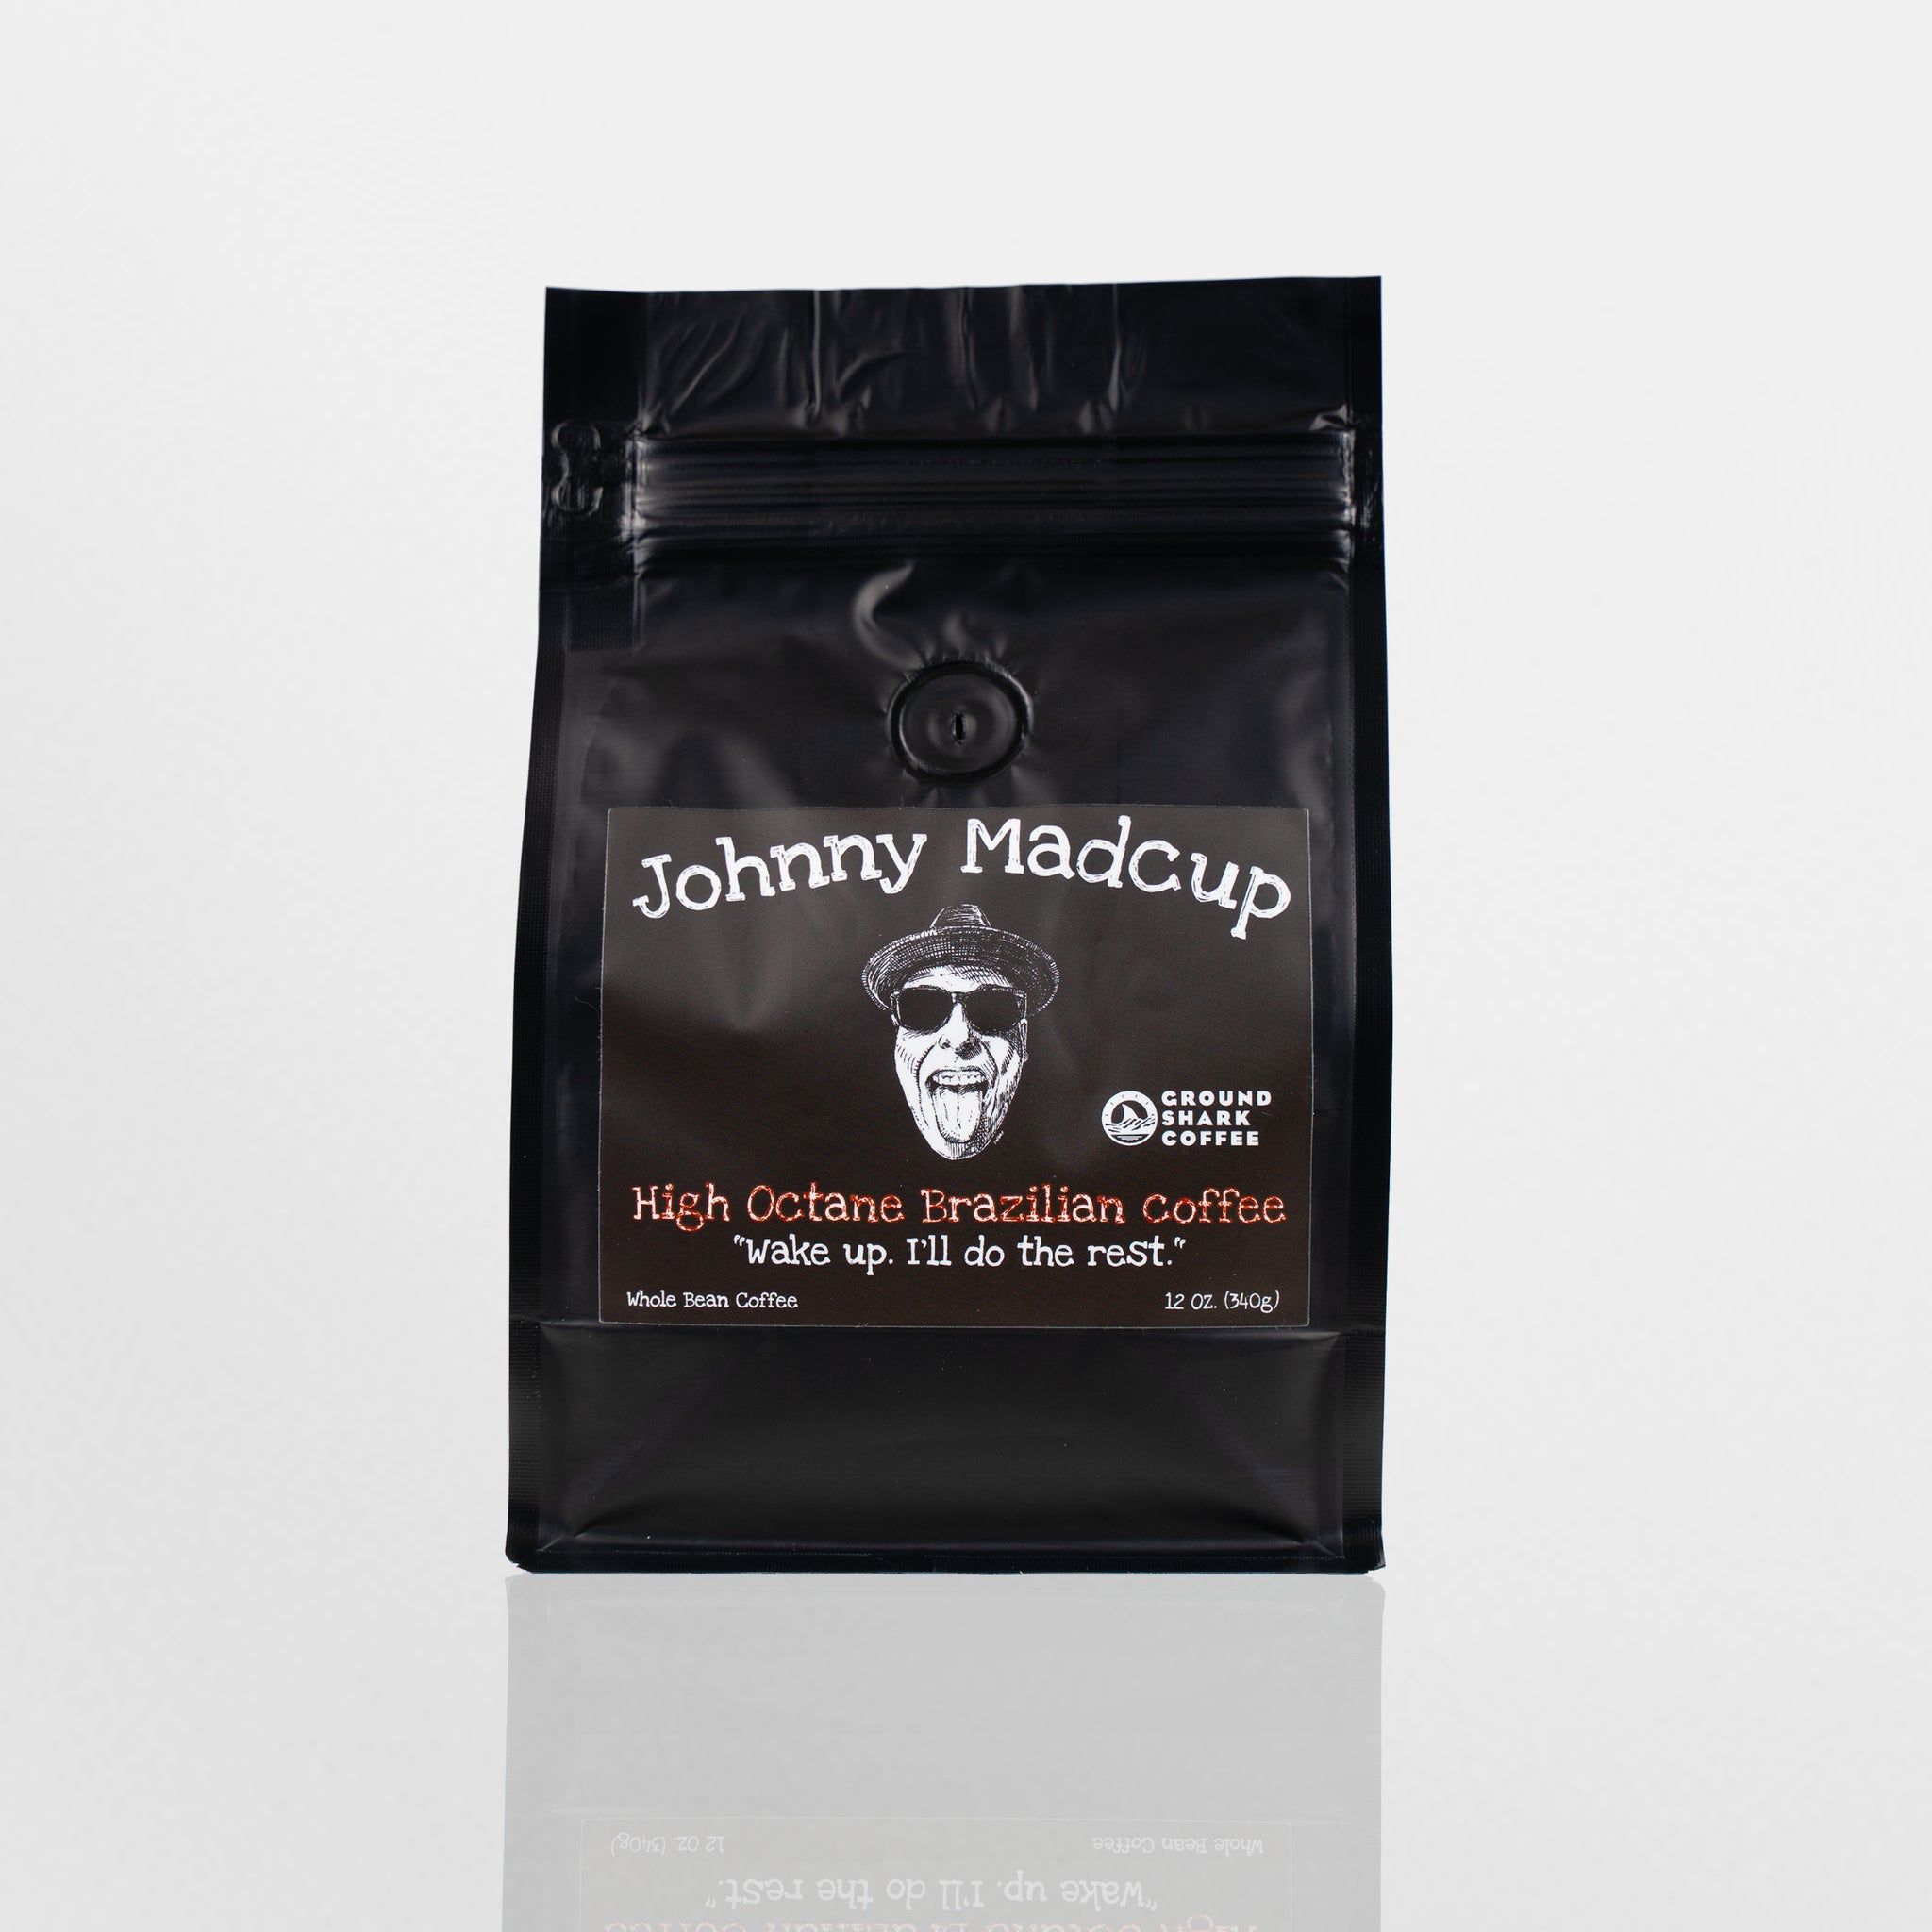 Madcup High Octane Coffee